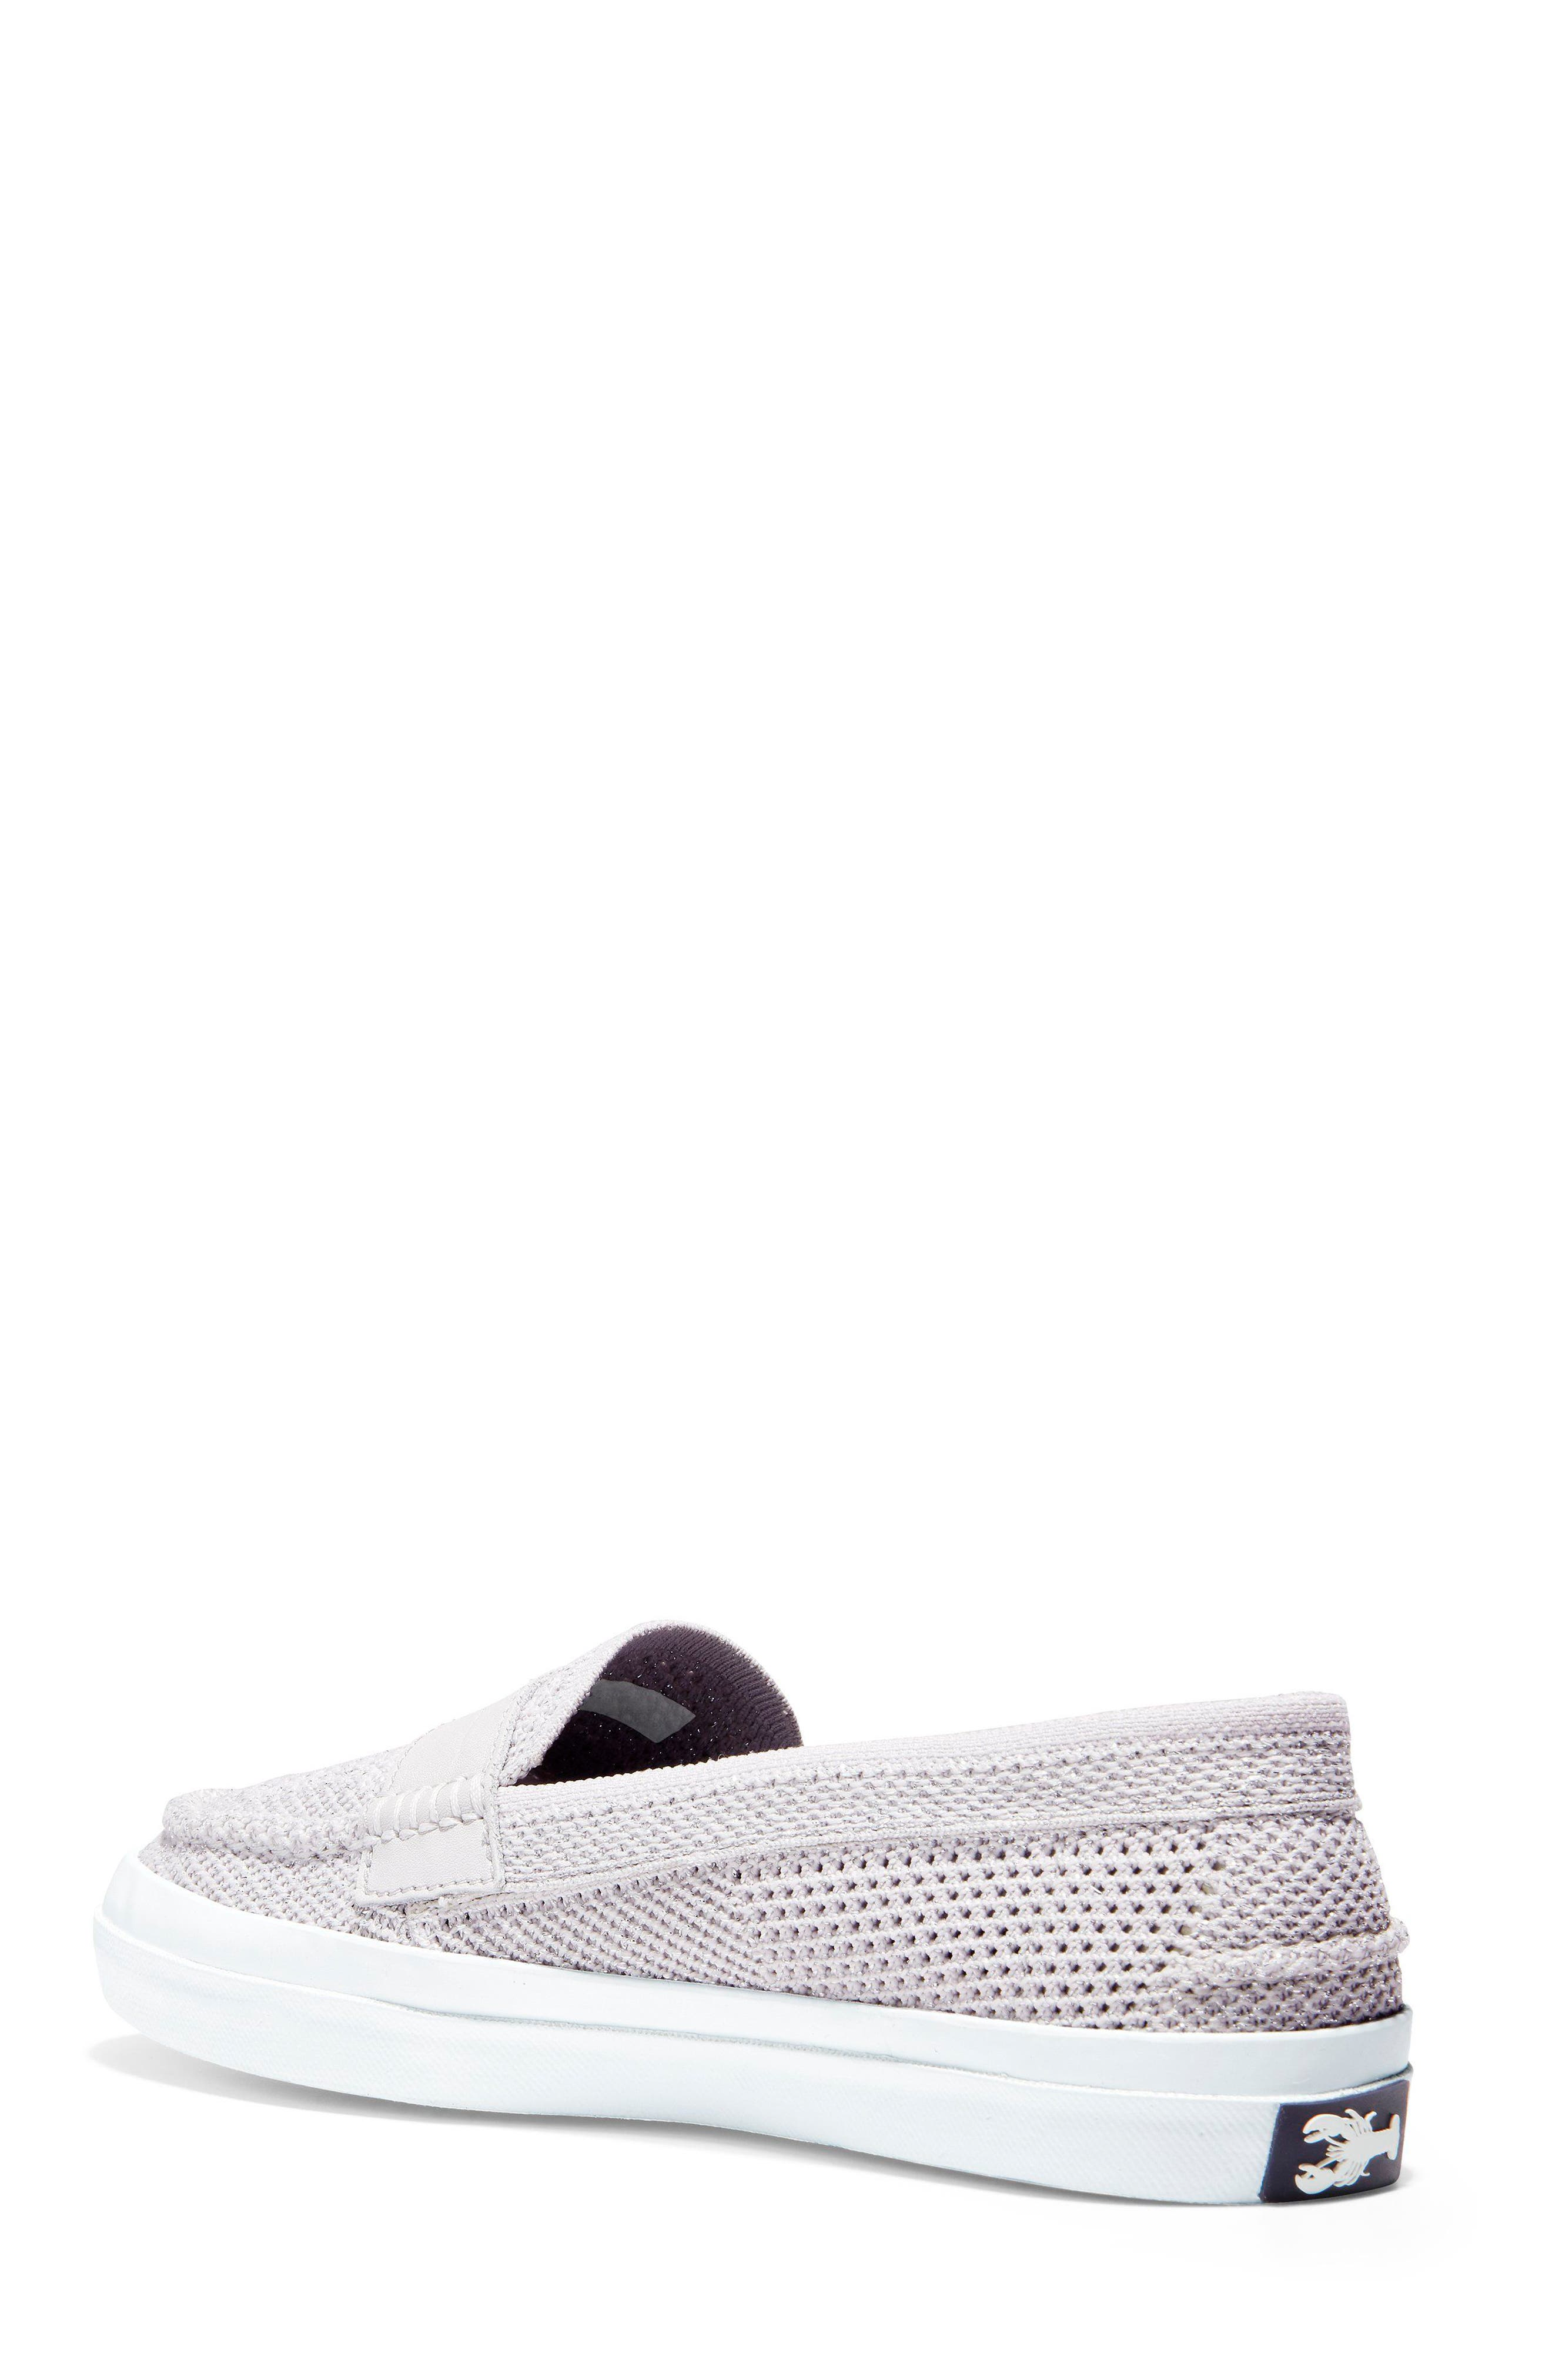 Pinch Stitchlite<sup>™</sup> Loafer,                             Alternate thumbnail 2, color,                             SILVER/ WHITE LEATHER